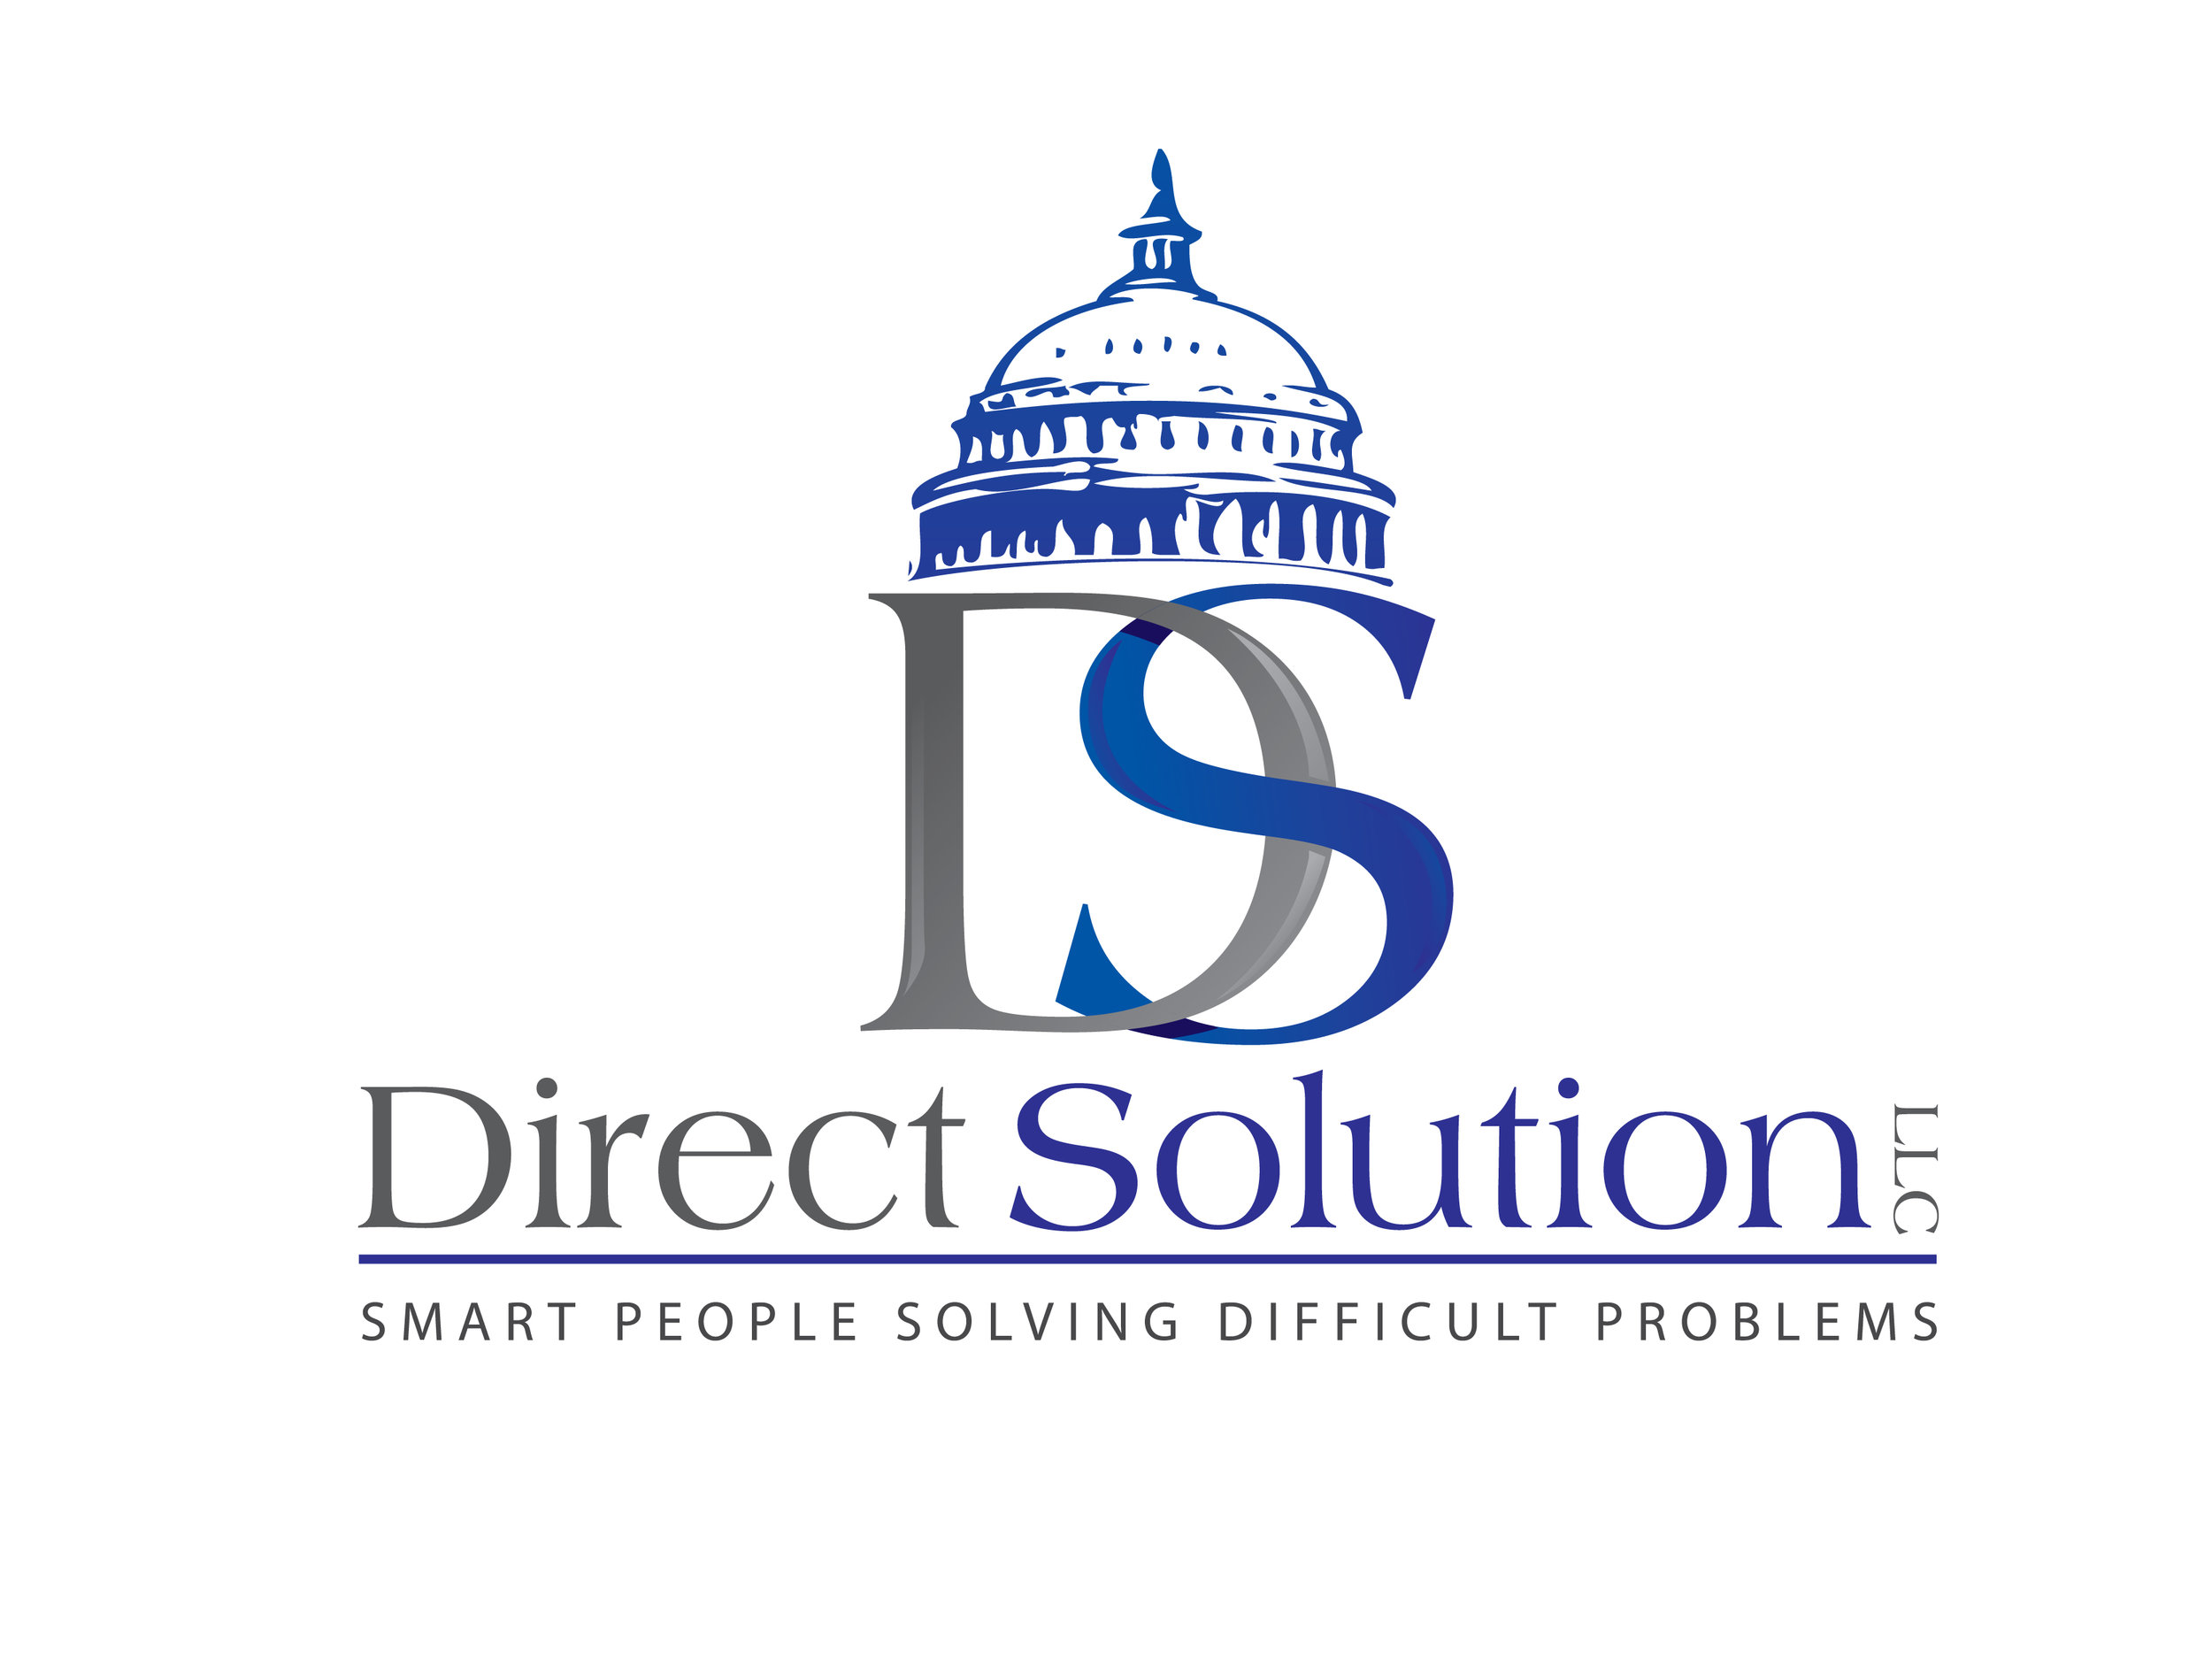 Direct Solution - Provides Products and Services to the U.S. Military, U.S. Government Agencies, and Civilian Businesses in the areas of National Security and Public Safety.  Together with our partners Darley Defense, FLIR, L3 Warrior Systems, and Sig Sauer Inc., we are providing the best solutions to our clients' most challenging requirements.